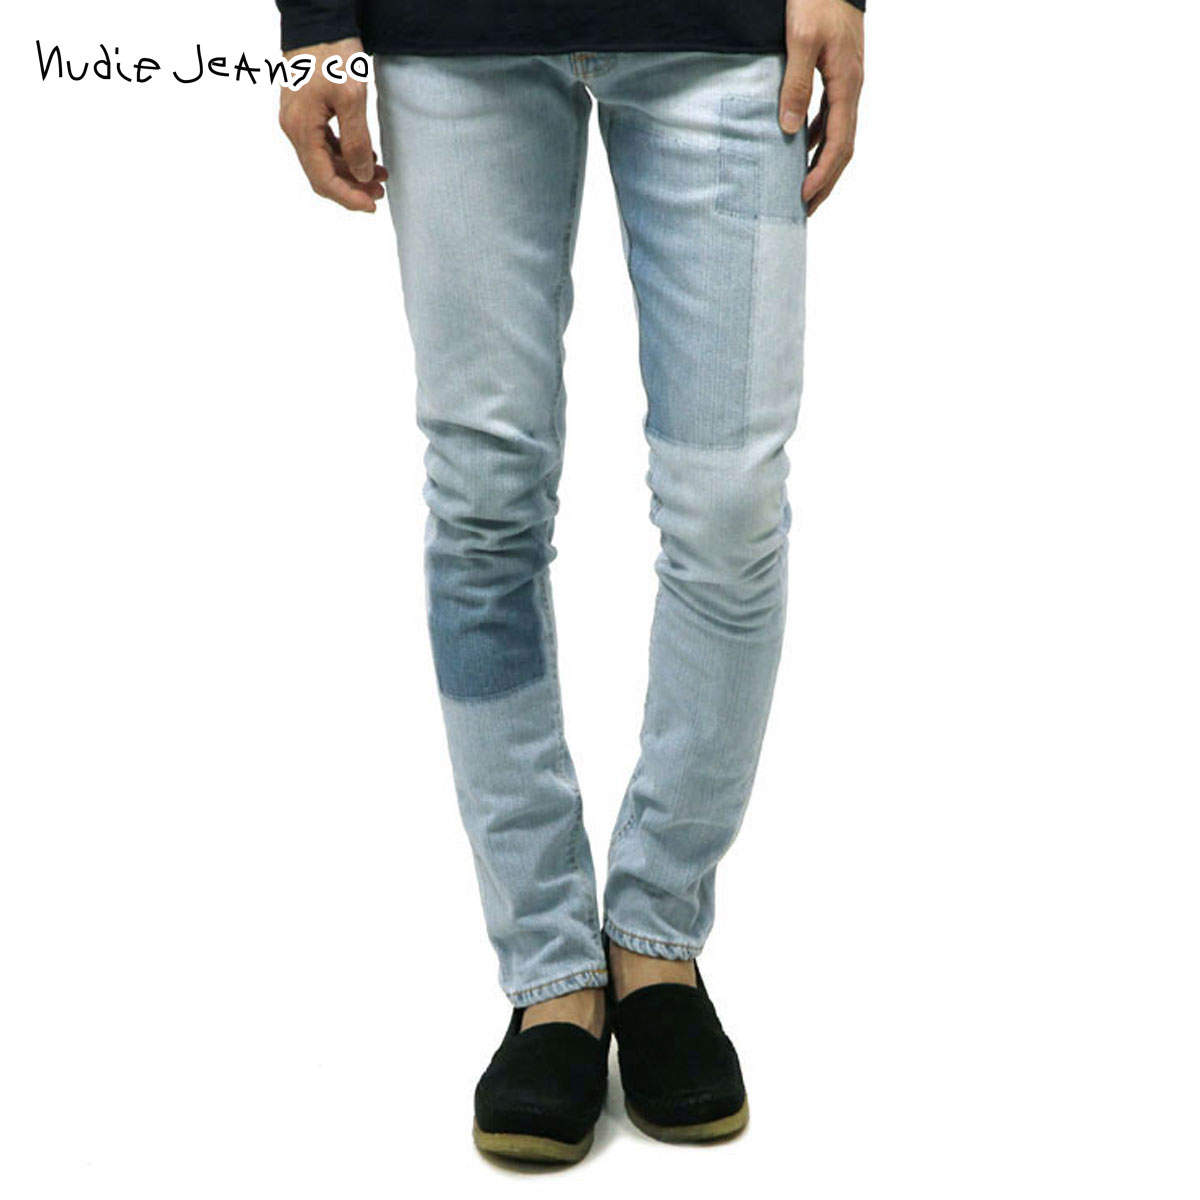 cc76eebca52 Nudie jeans Nudie Jeans regular store men jeans LEAN DEAN INDIGO STRIP 766  1124730 ...